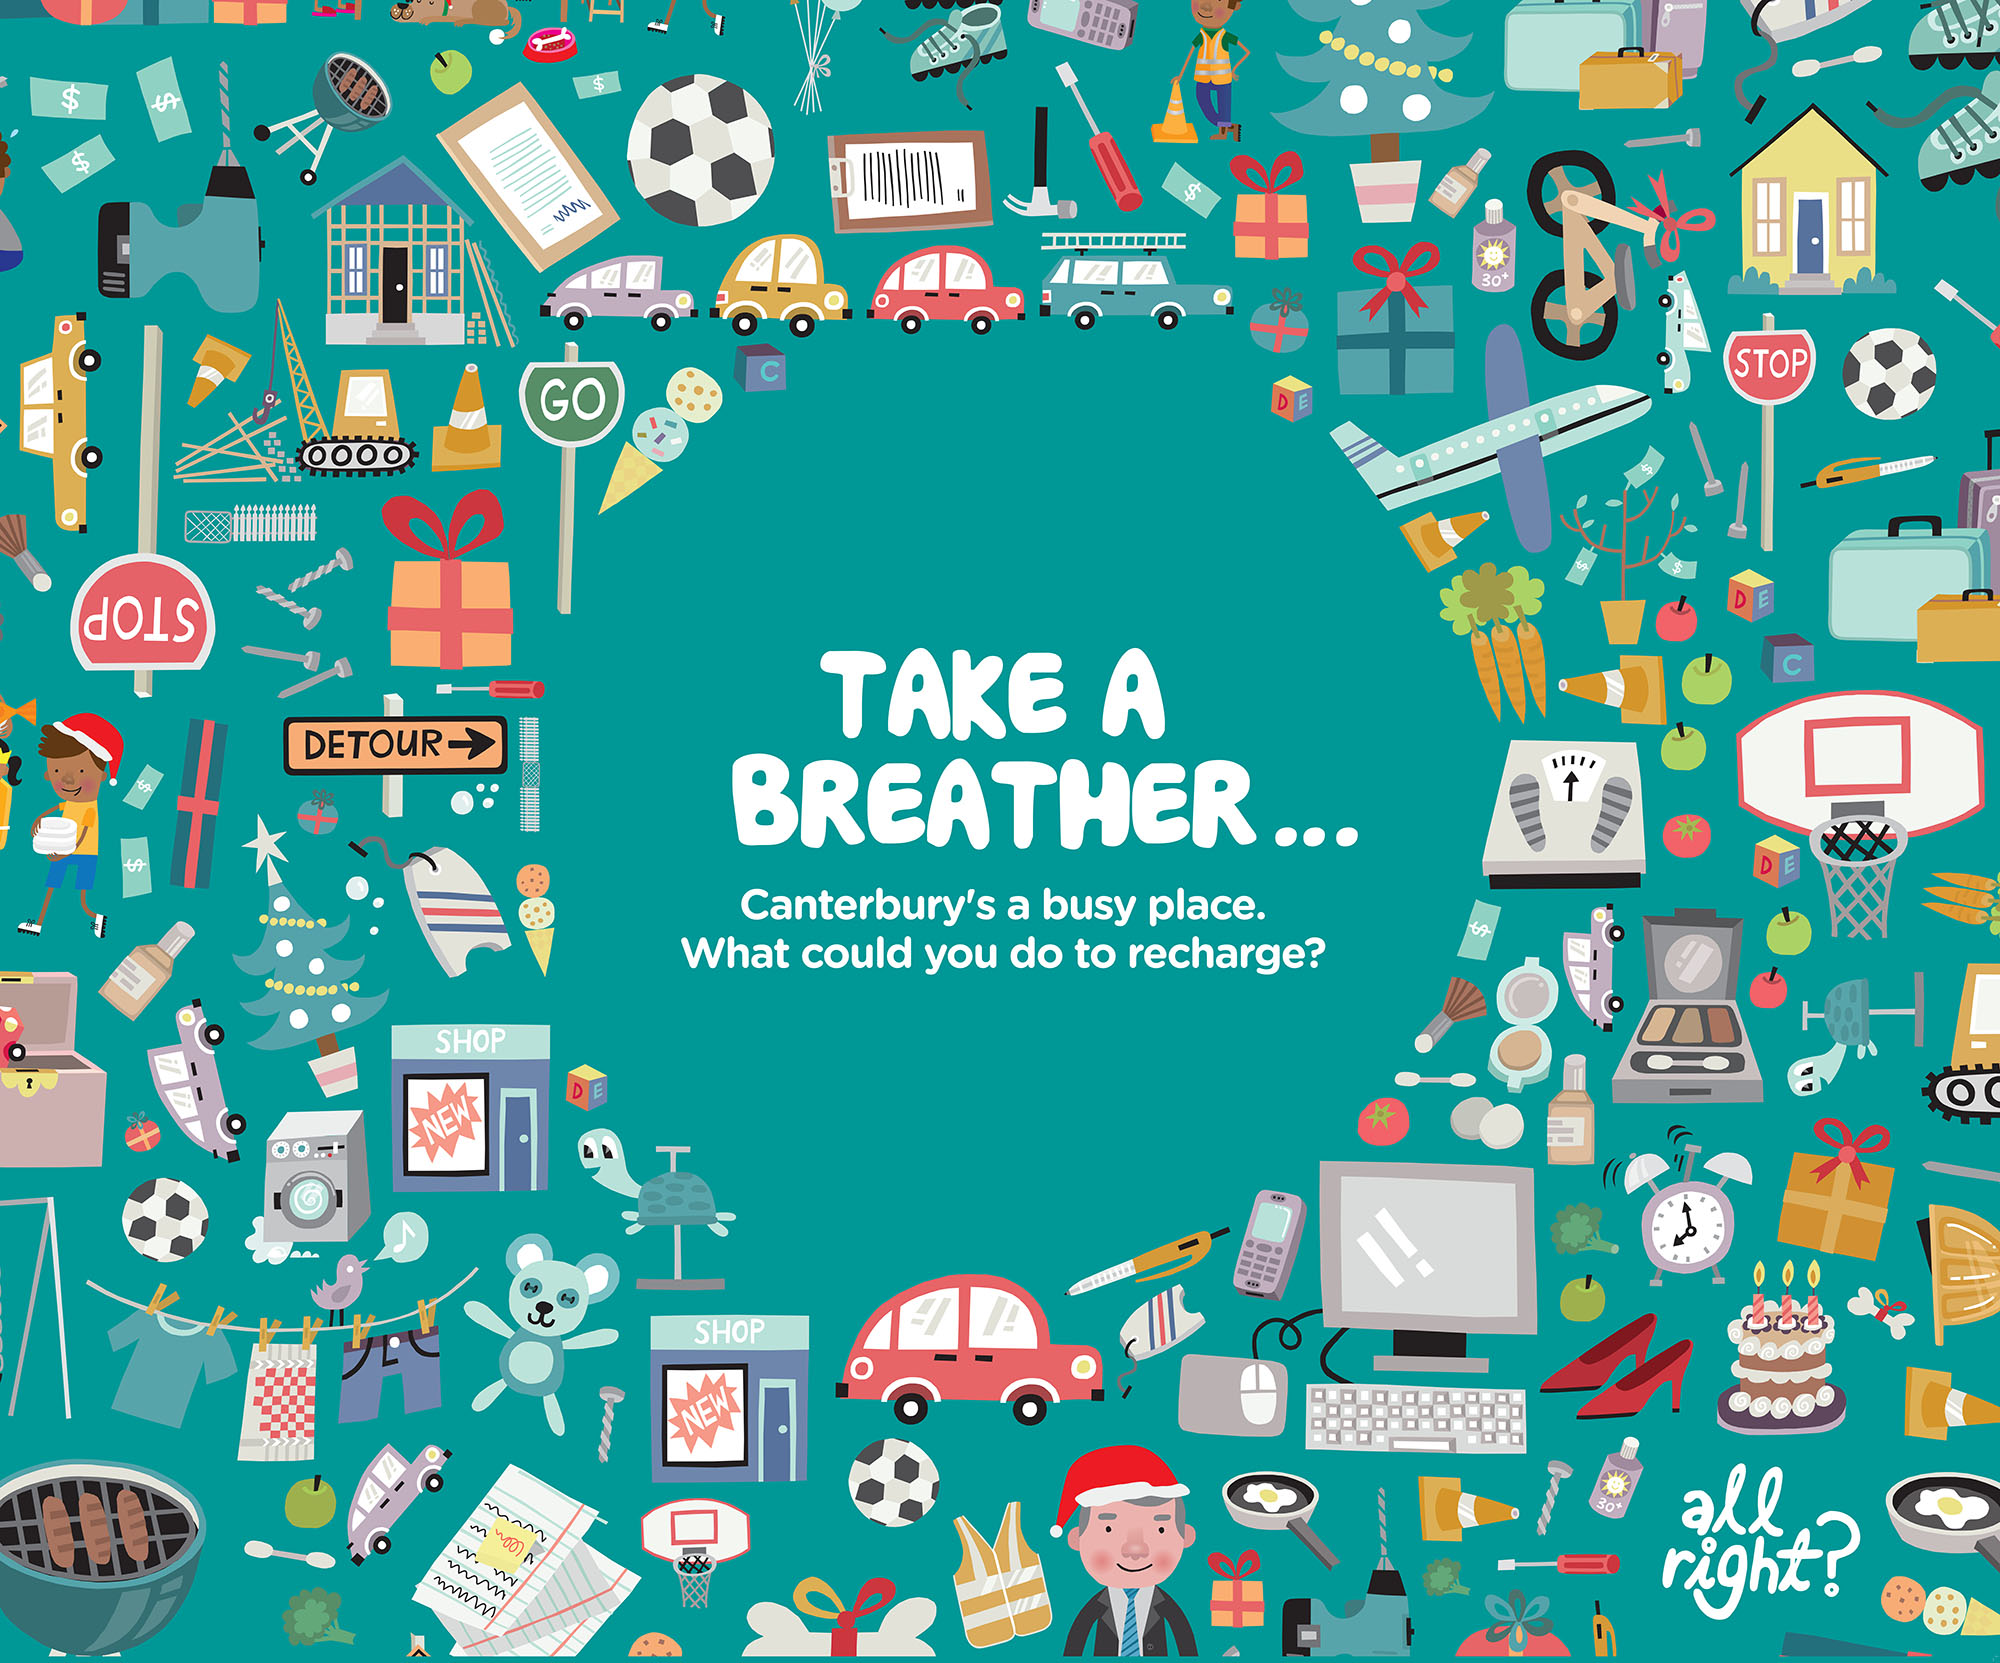 All Right? Campaigns and Projects: Take a Breather